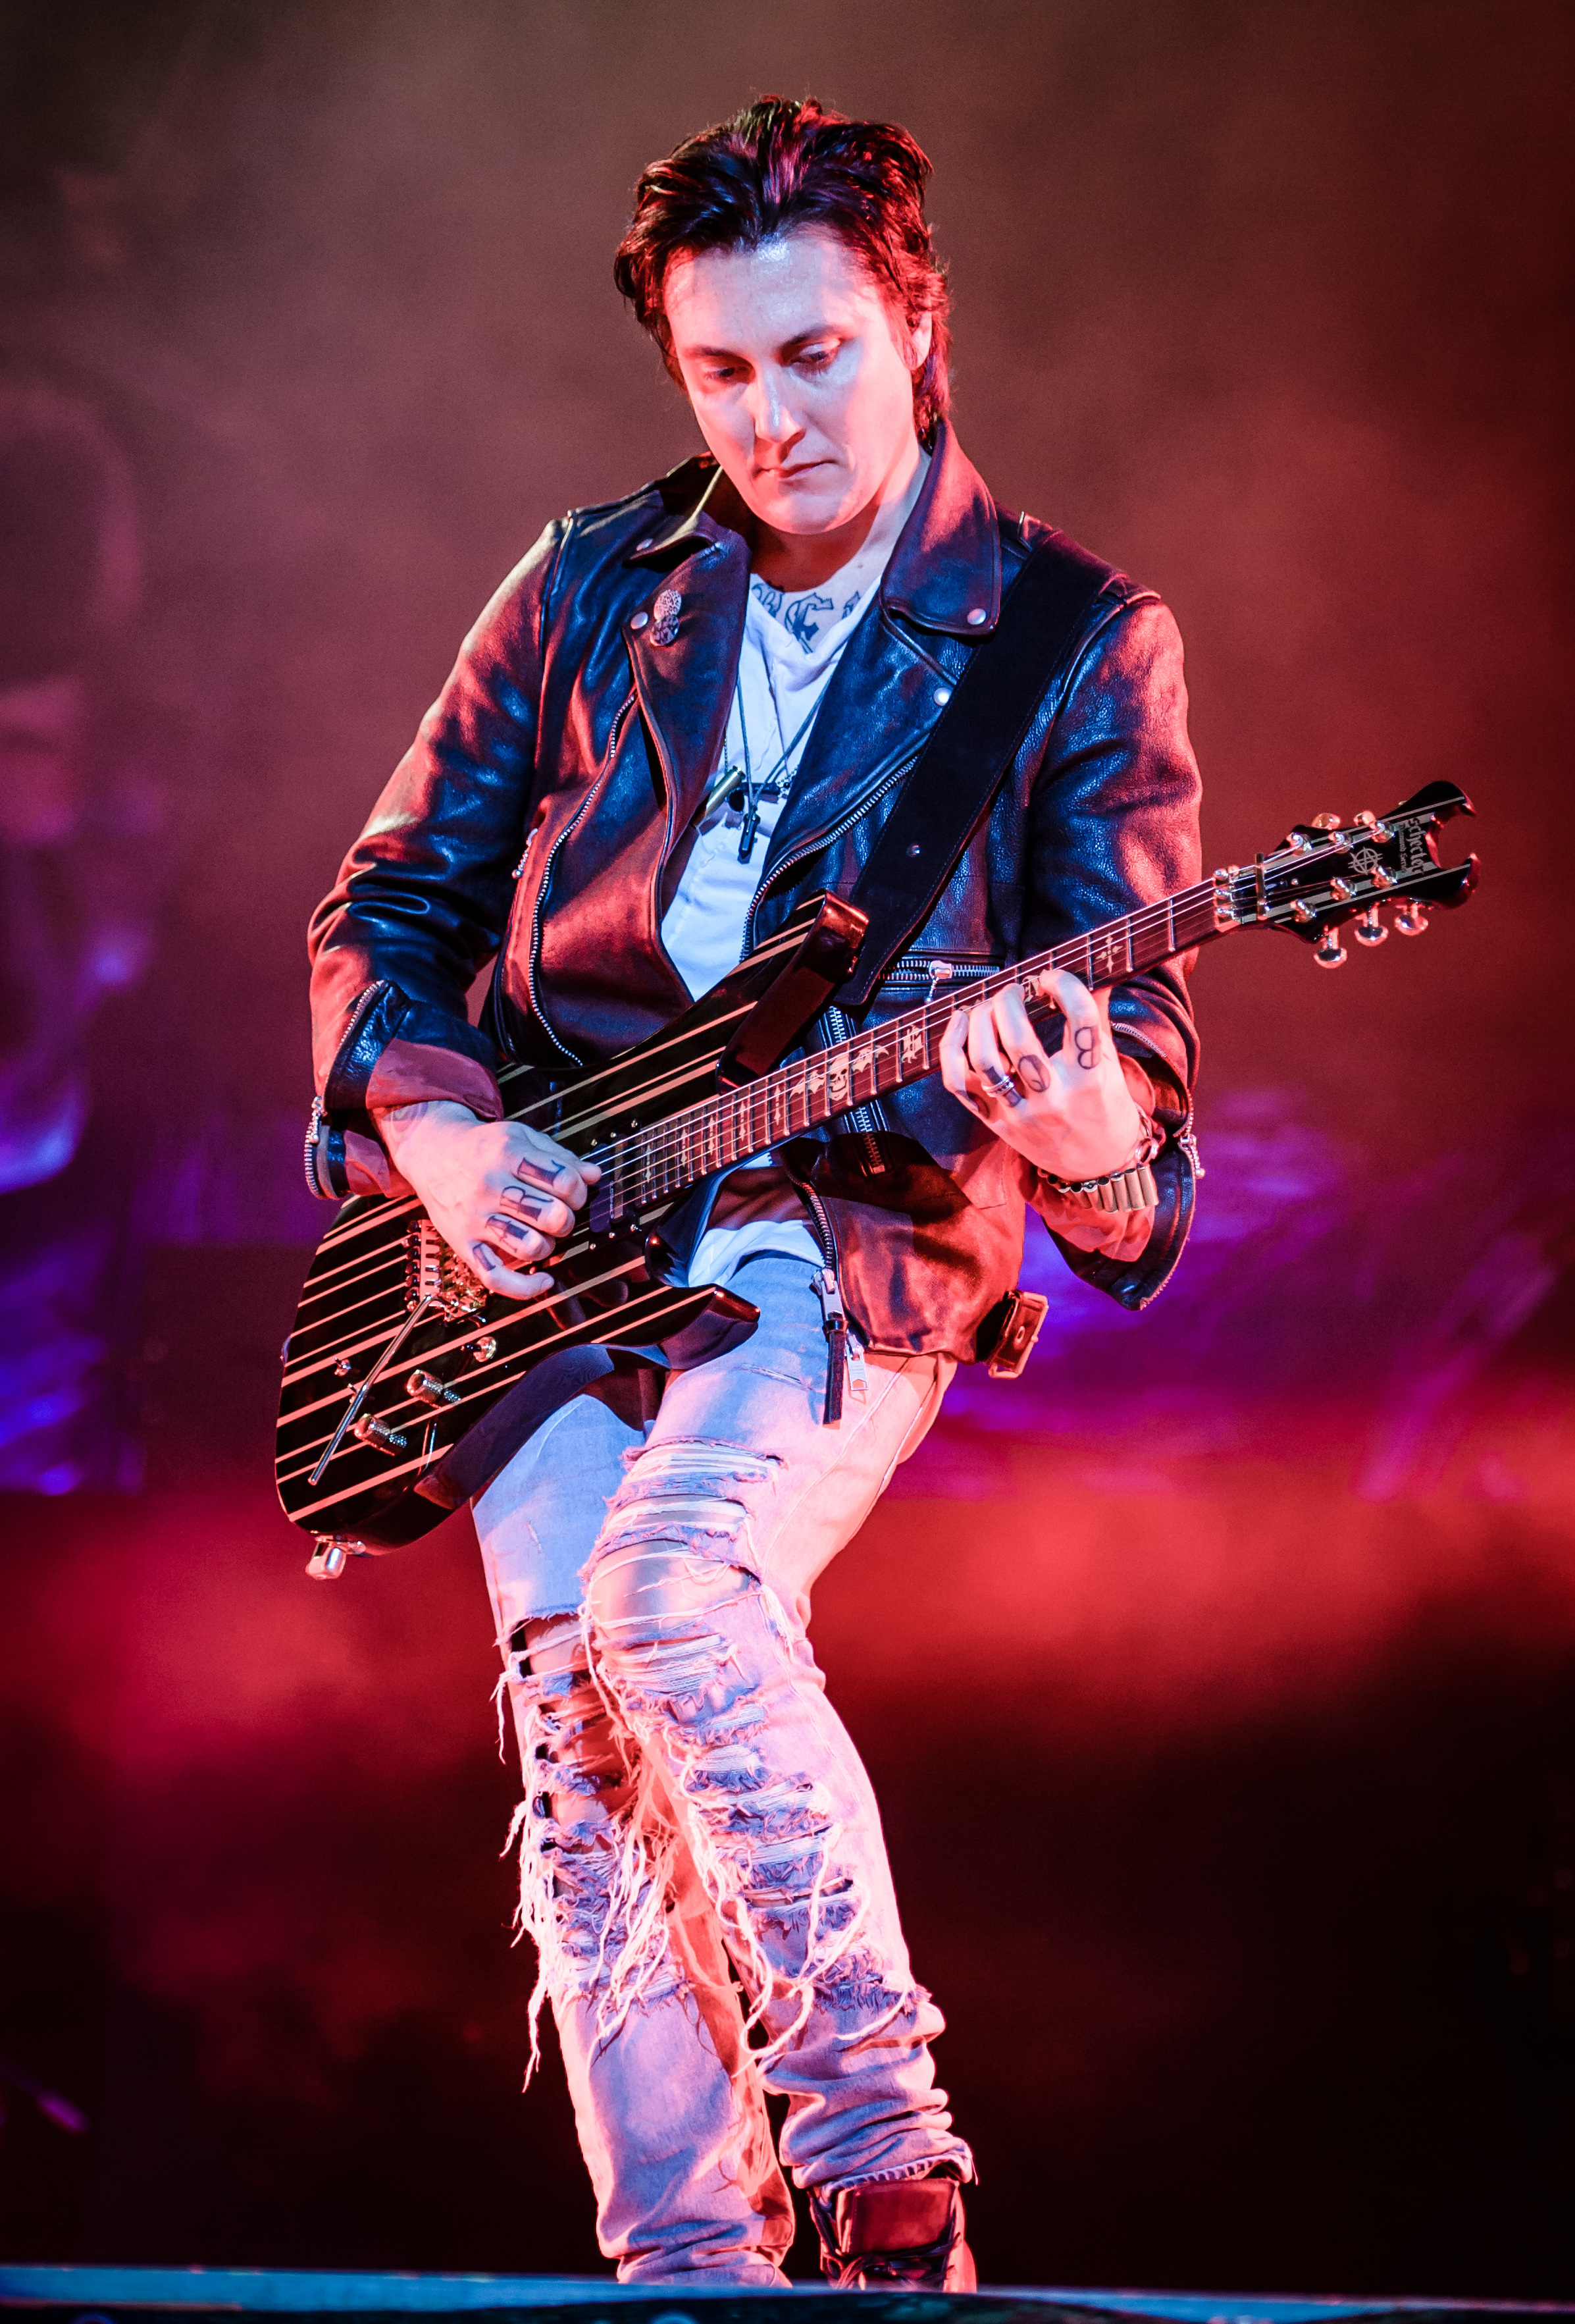 Synyster Gates - Wikipedia